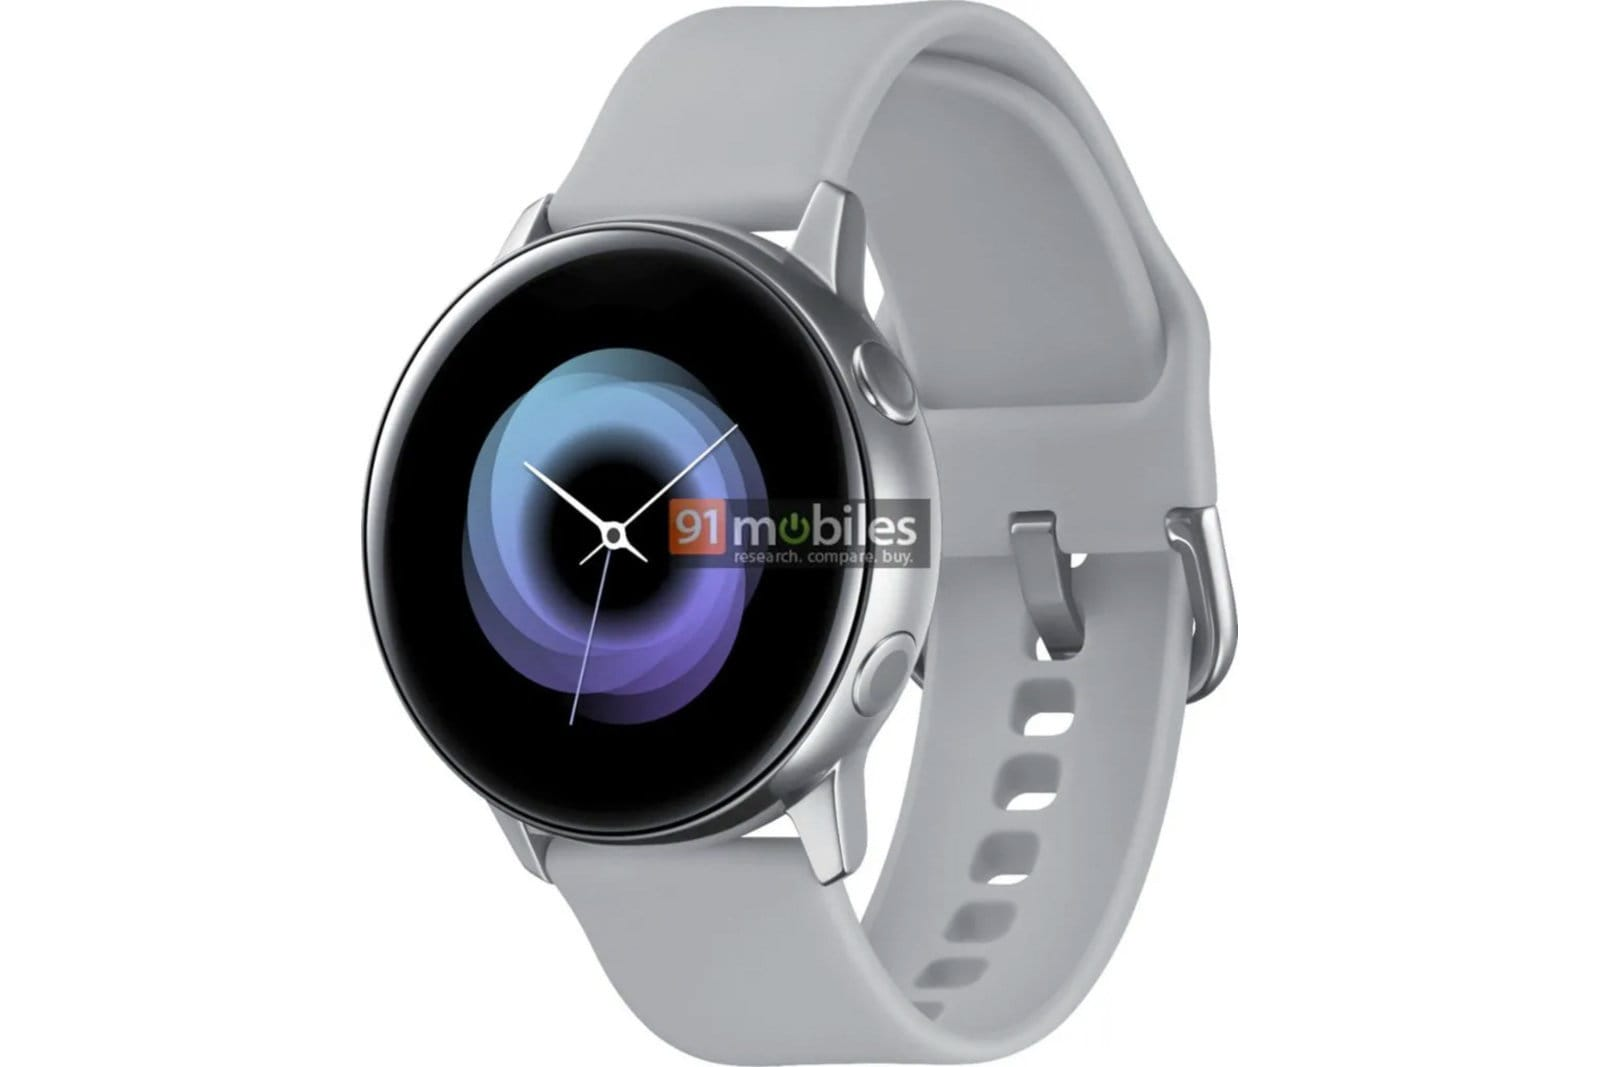 Galaxy Watch Sports Image Leak